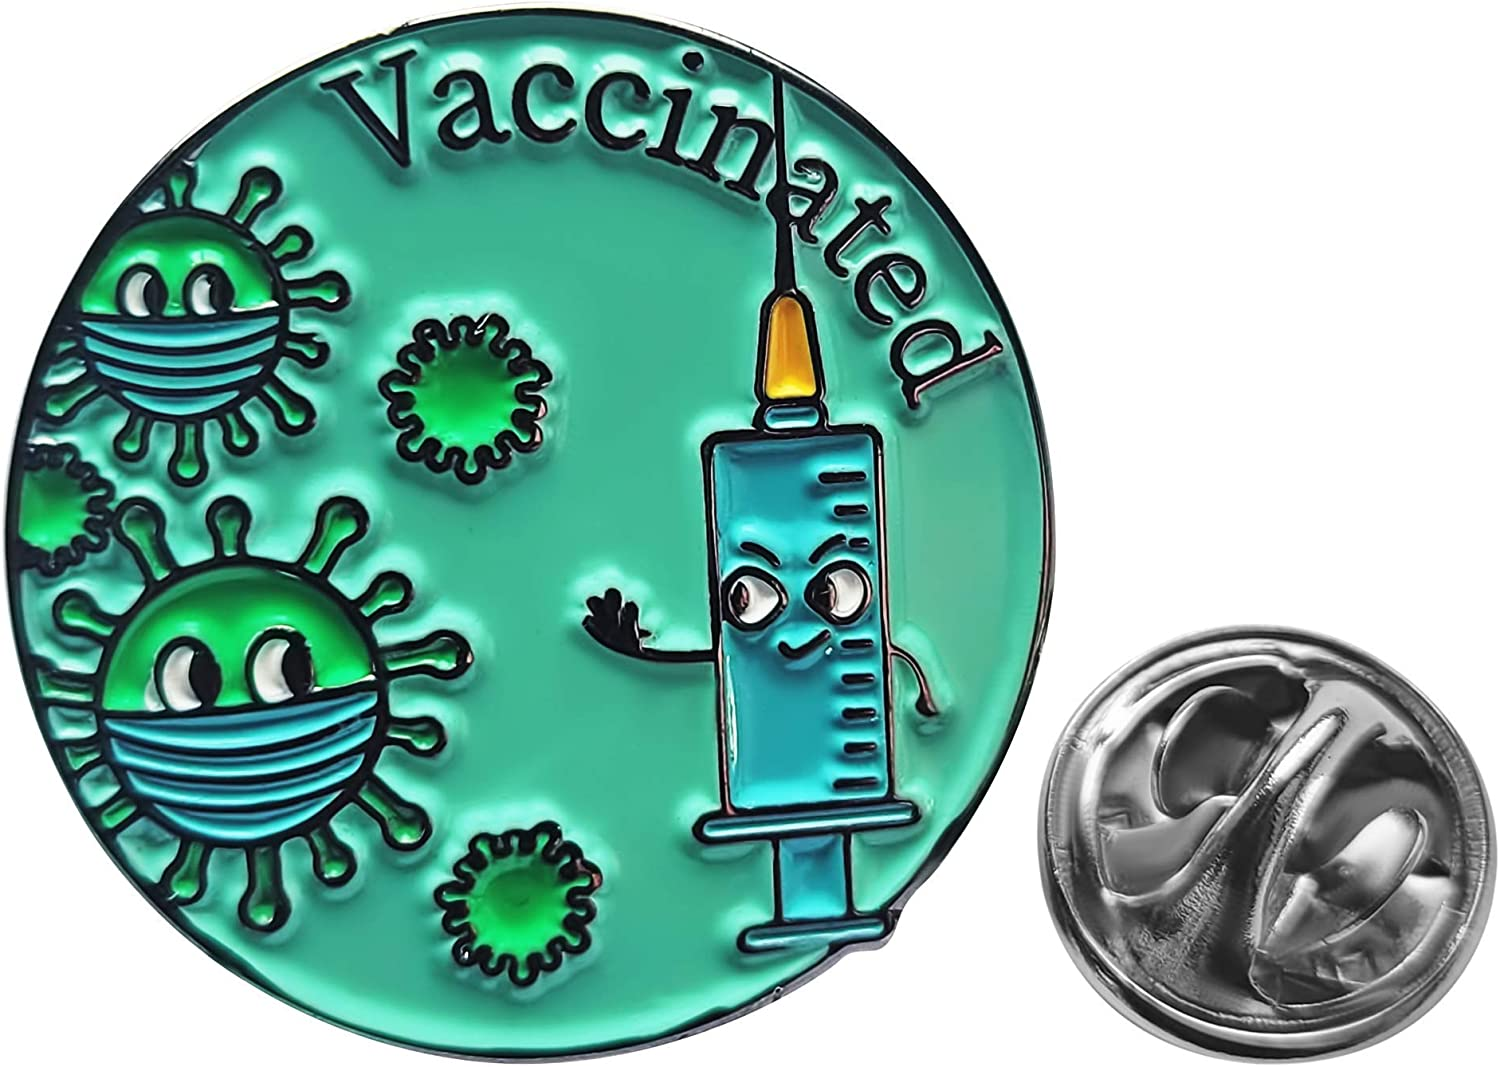 Vaccinated Pin – 25mm Enamel Vaccine Pin – Funny Button Pin Ideal for Shirt, Backpack – Unique Design and Modern Color – Ideal Support Pin for Nurses, Front Line Workers